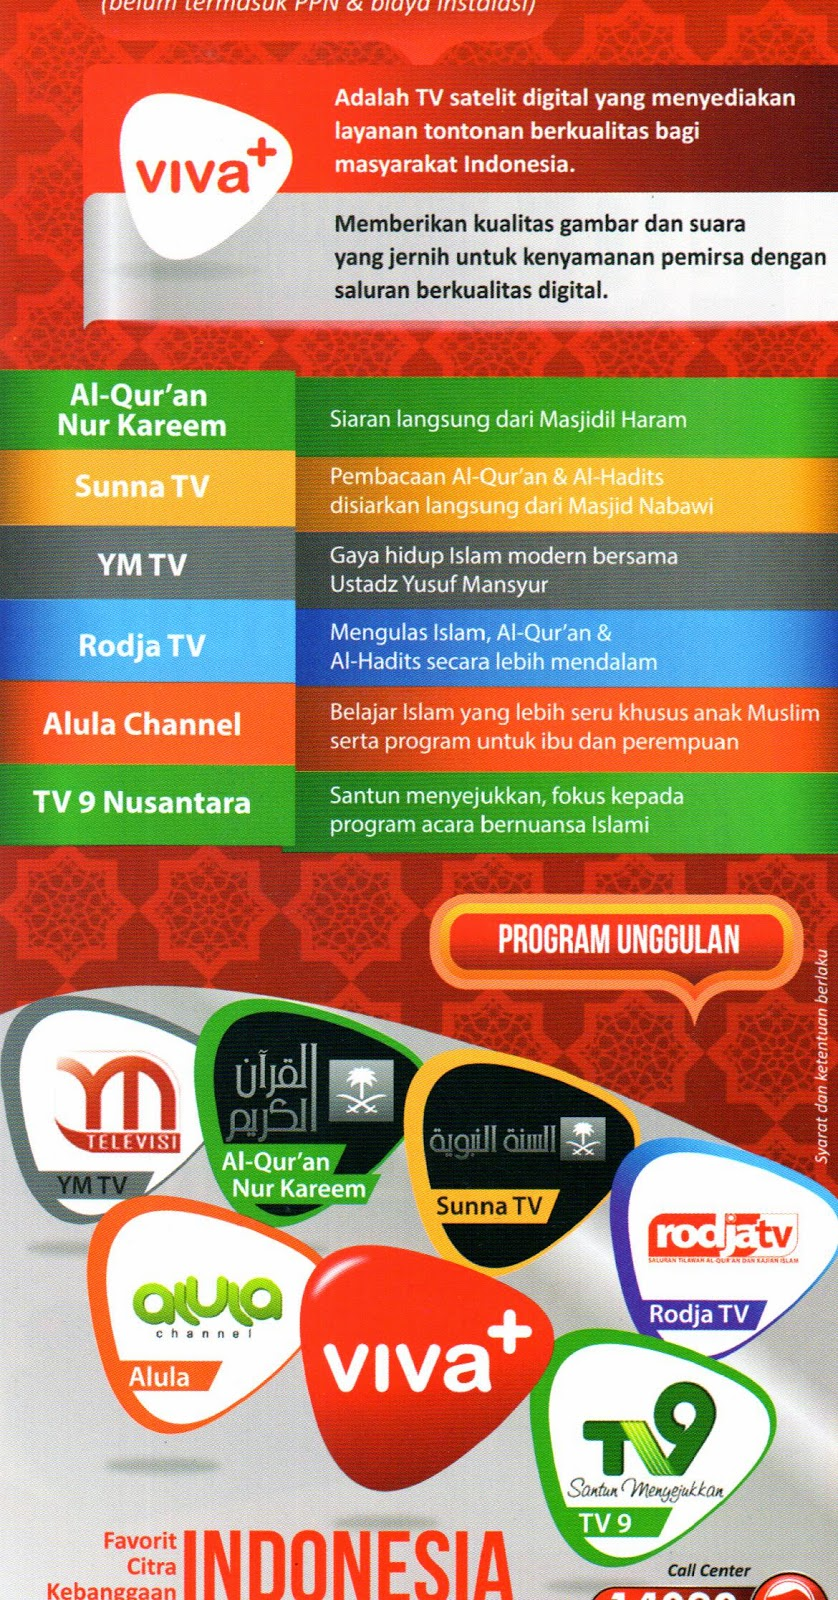 channel tv unggulan viva + plus